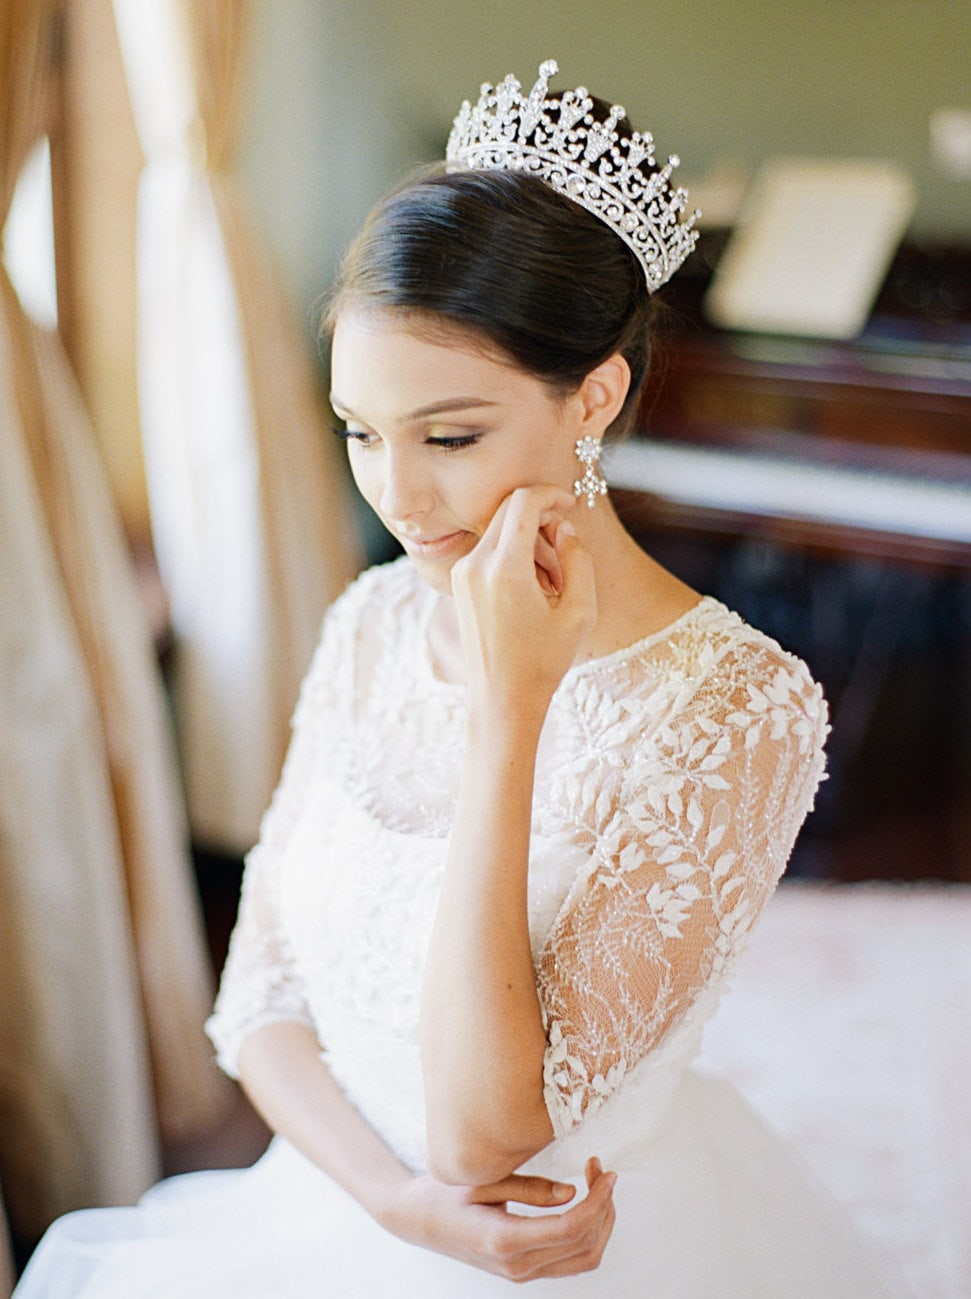 Fairytale bridal crowns tiaras from eden luxe bridal by southbound b portia silver bridal diadem junglespirit Choice Image